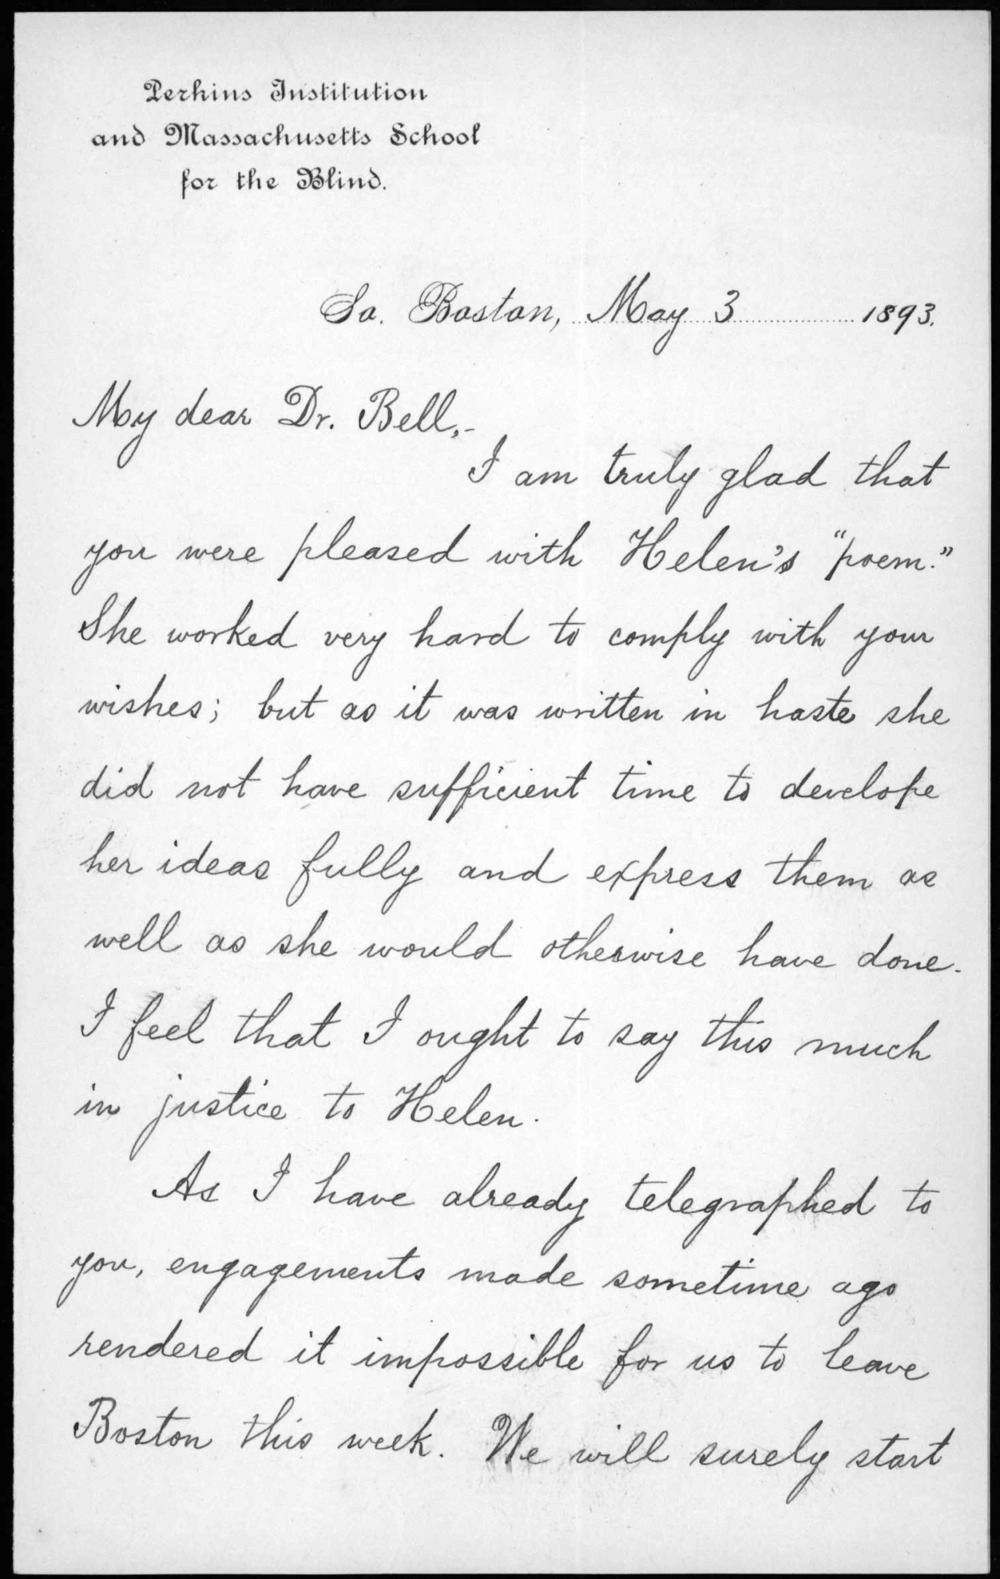 Letter from Anne Sullivan to Alexander Graham Bell, May 3, 1893